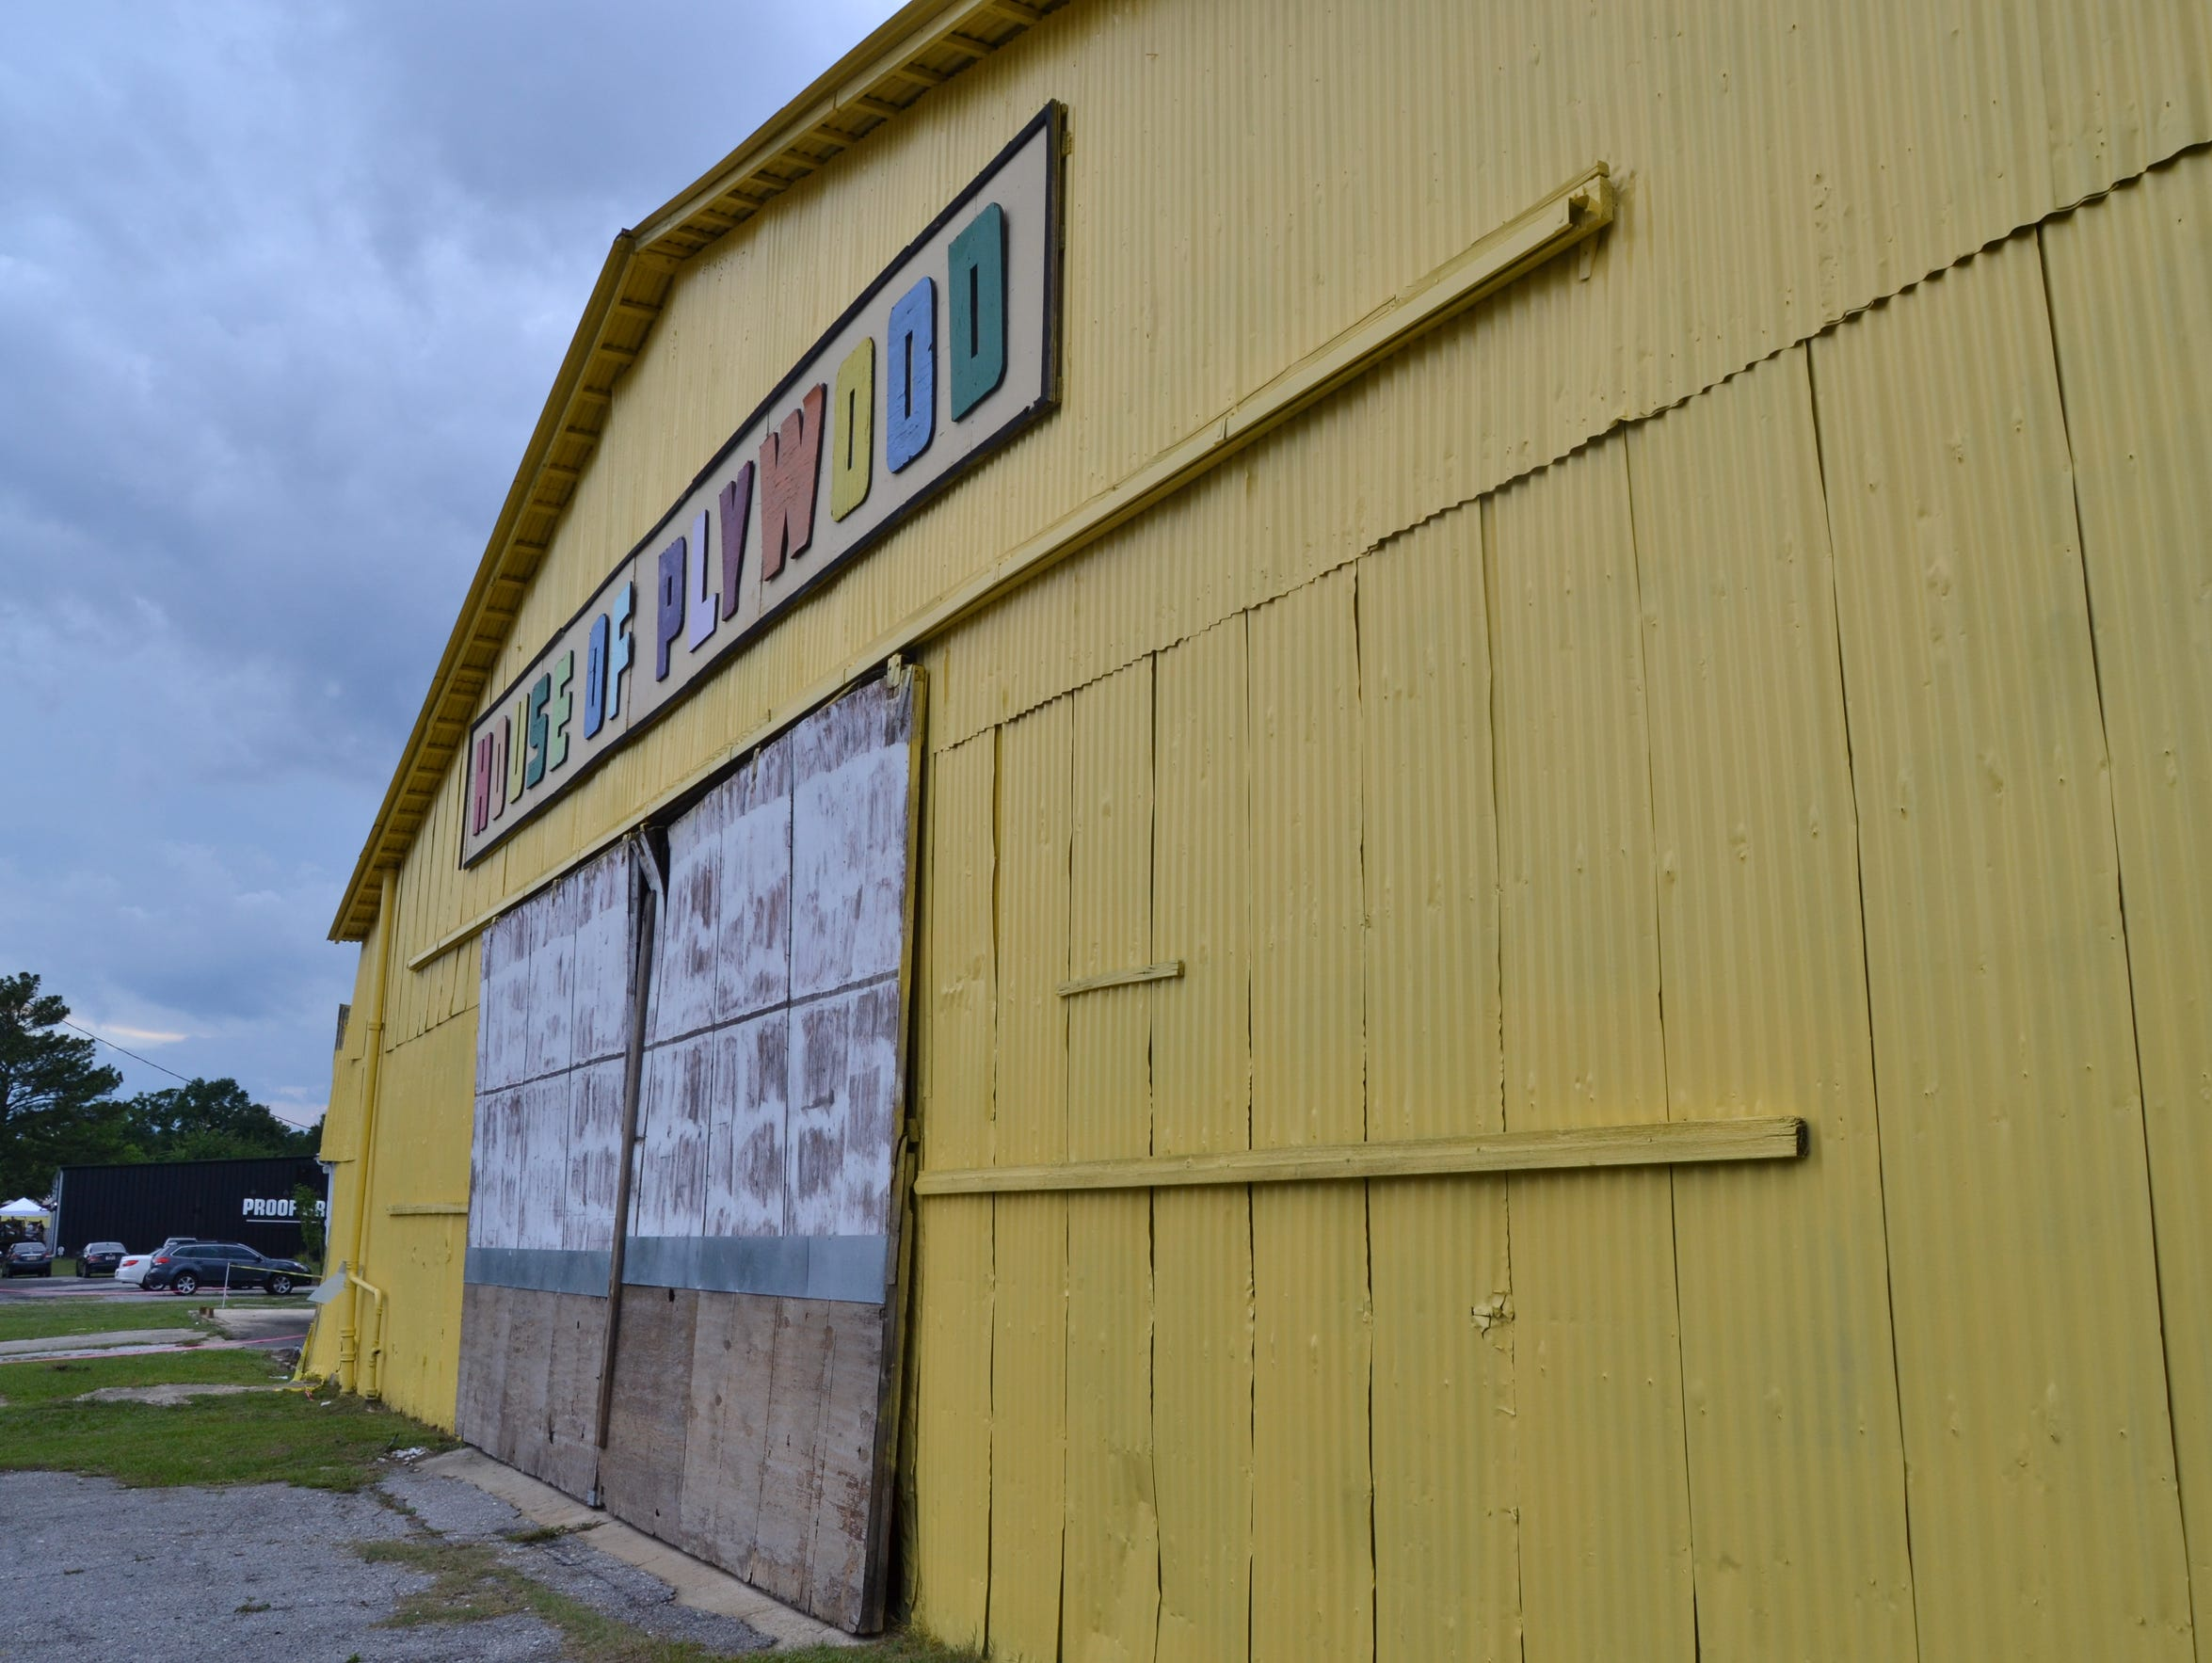 Fresh yellow paint adorns a warehouse in Railroad Square.